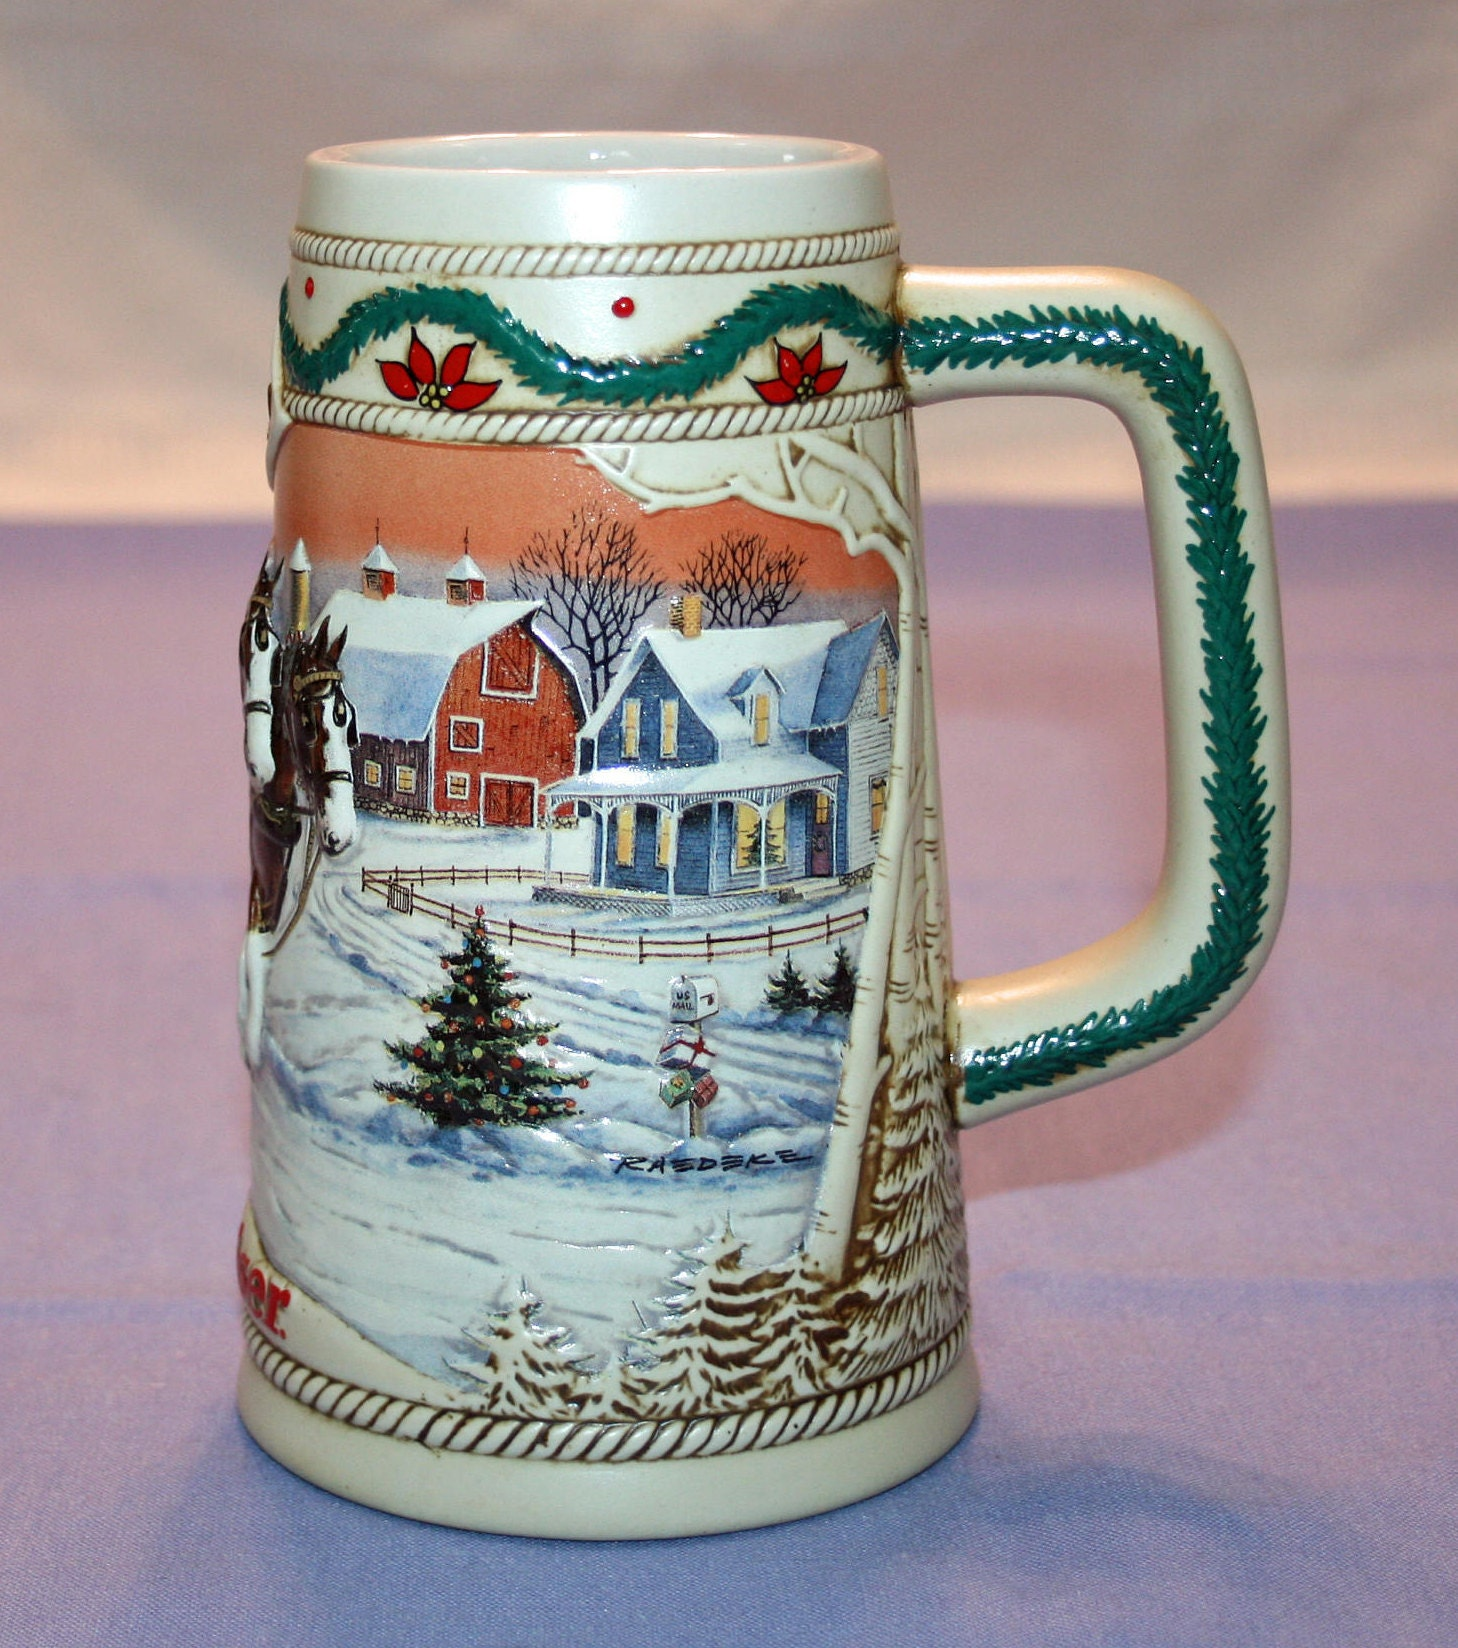 Vintage 1996 Budweiser American Homestead Beer Stein Holiday Tankard  Limited Edition Brazil Bar Collectible Barware Memorabilia Breweriana